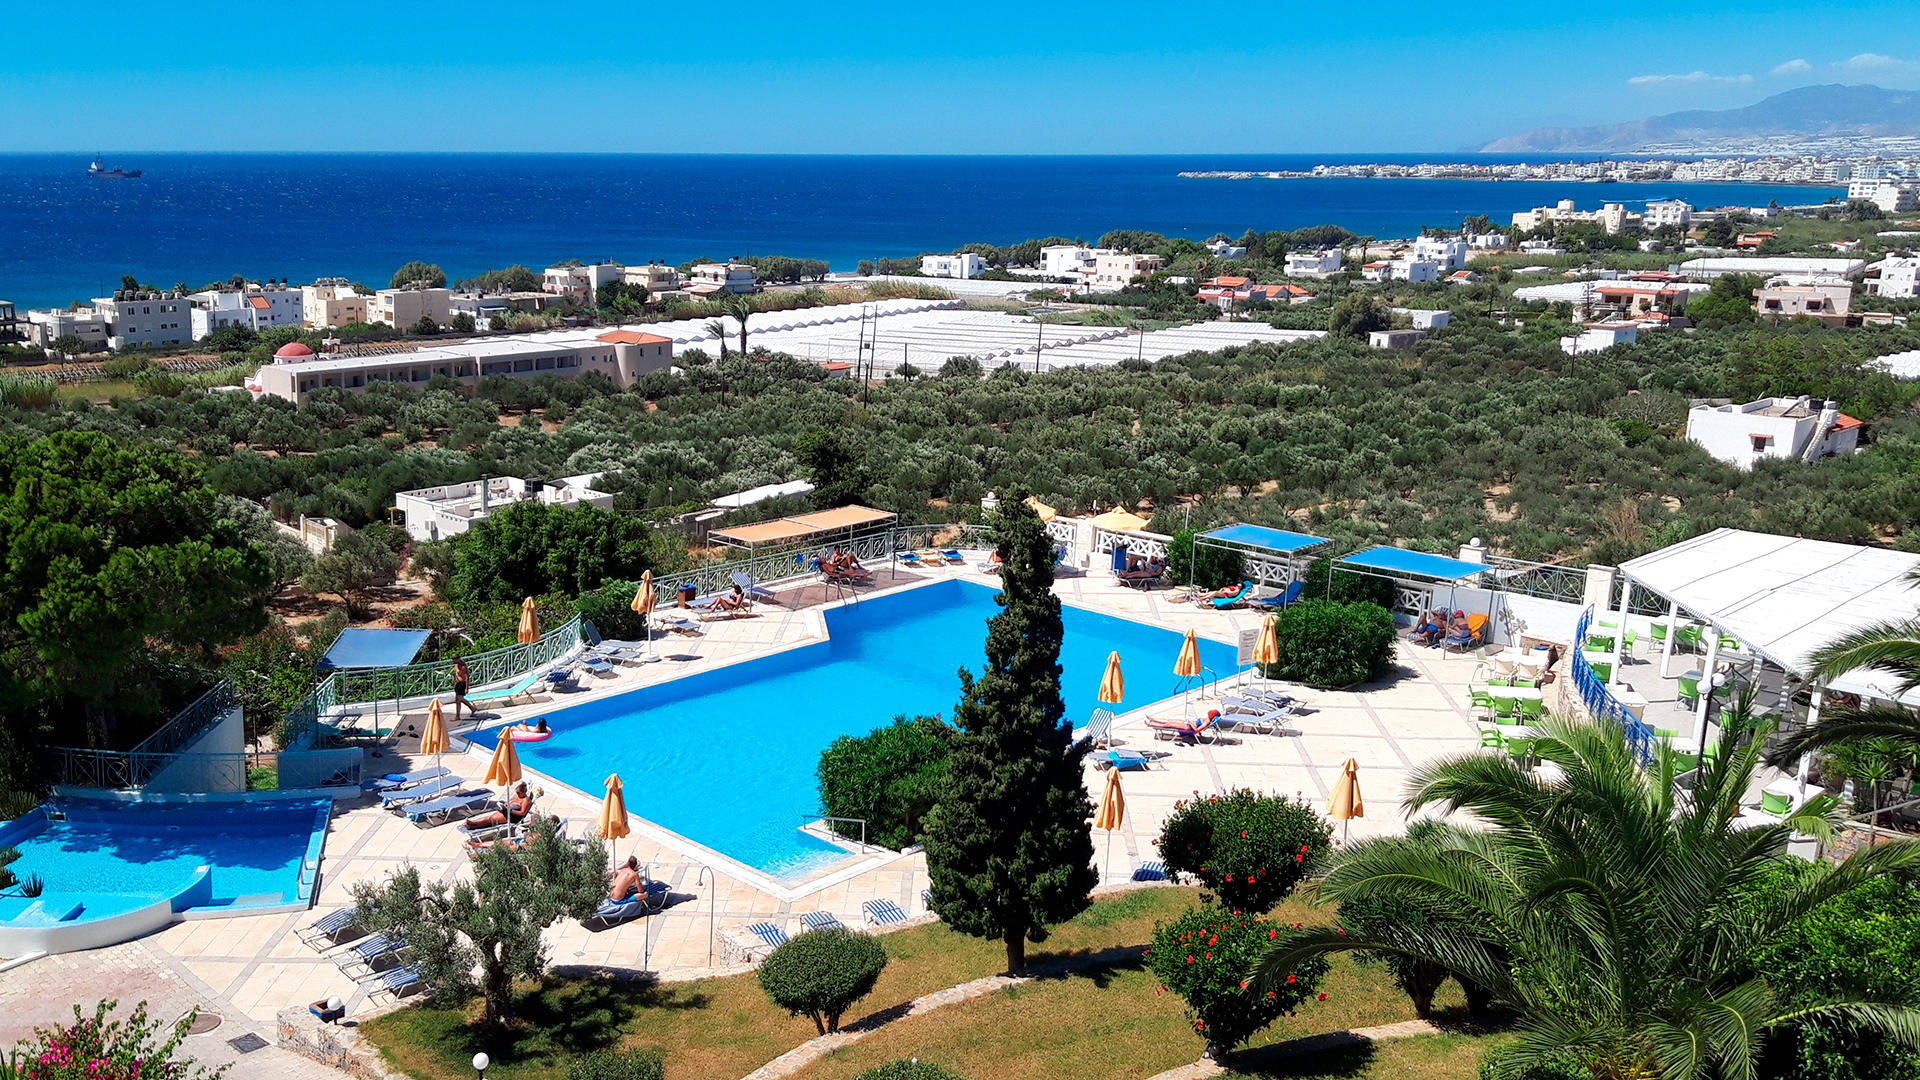 Hotel Arion Palace